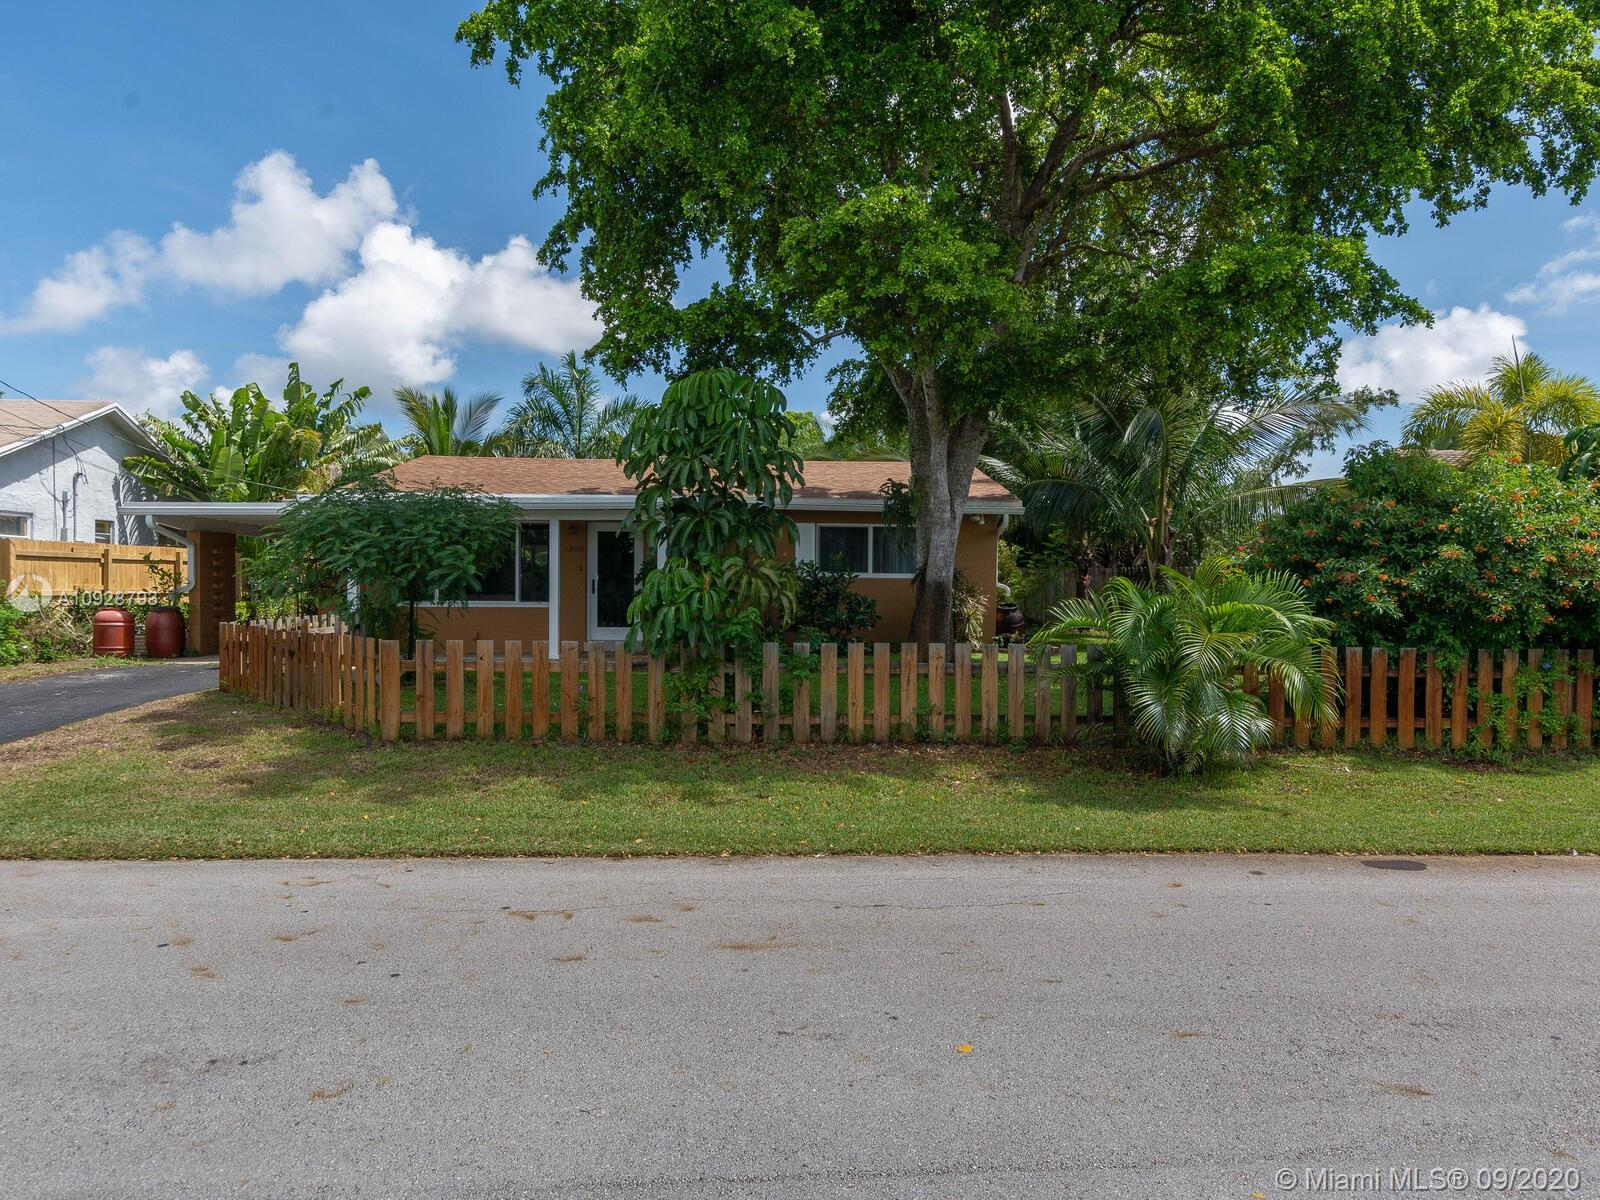 Located in the heart of Oakland Park one block from downtown. Home has impact windows. Well maintained and close to everything.